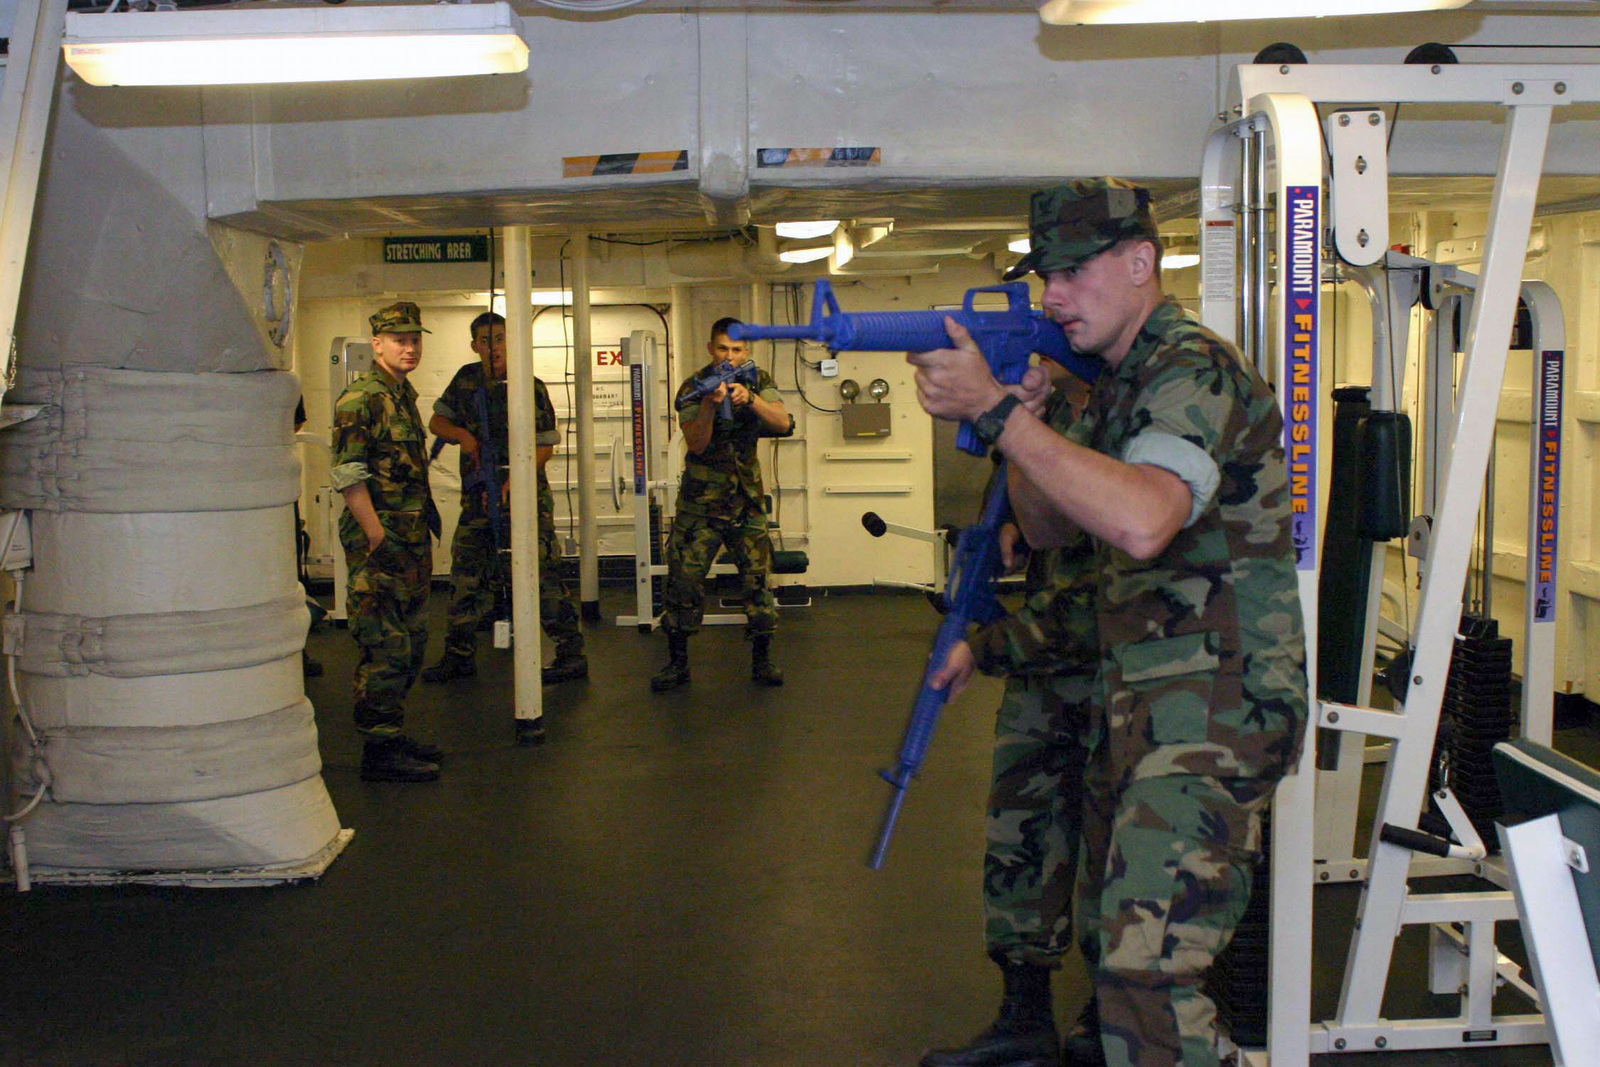 U.S. Navy (USN) members, armed with firearm simulators, of the visit, board, search, and seizure team, assigned to the USN Whidbey Island Class Dock Landing Ship USS TORTUGA (LSD 46), search for simulated stowaways, aboard the shipΘs assigned berthing barge during a drill on Oct. 26, 2006. (U.S. Navy photo by Mass Communication SPECIALIST Second Class David J. Ham) (Released)